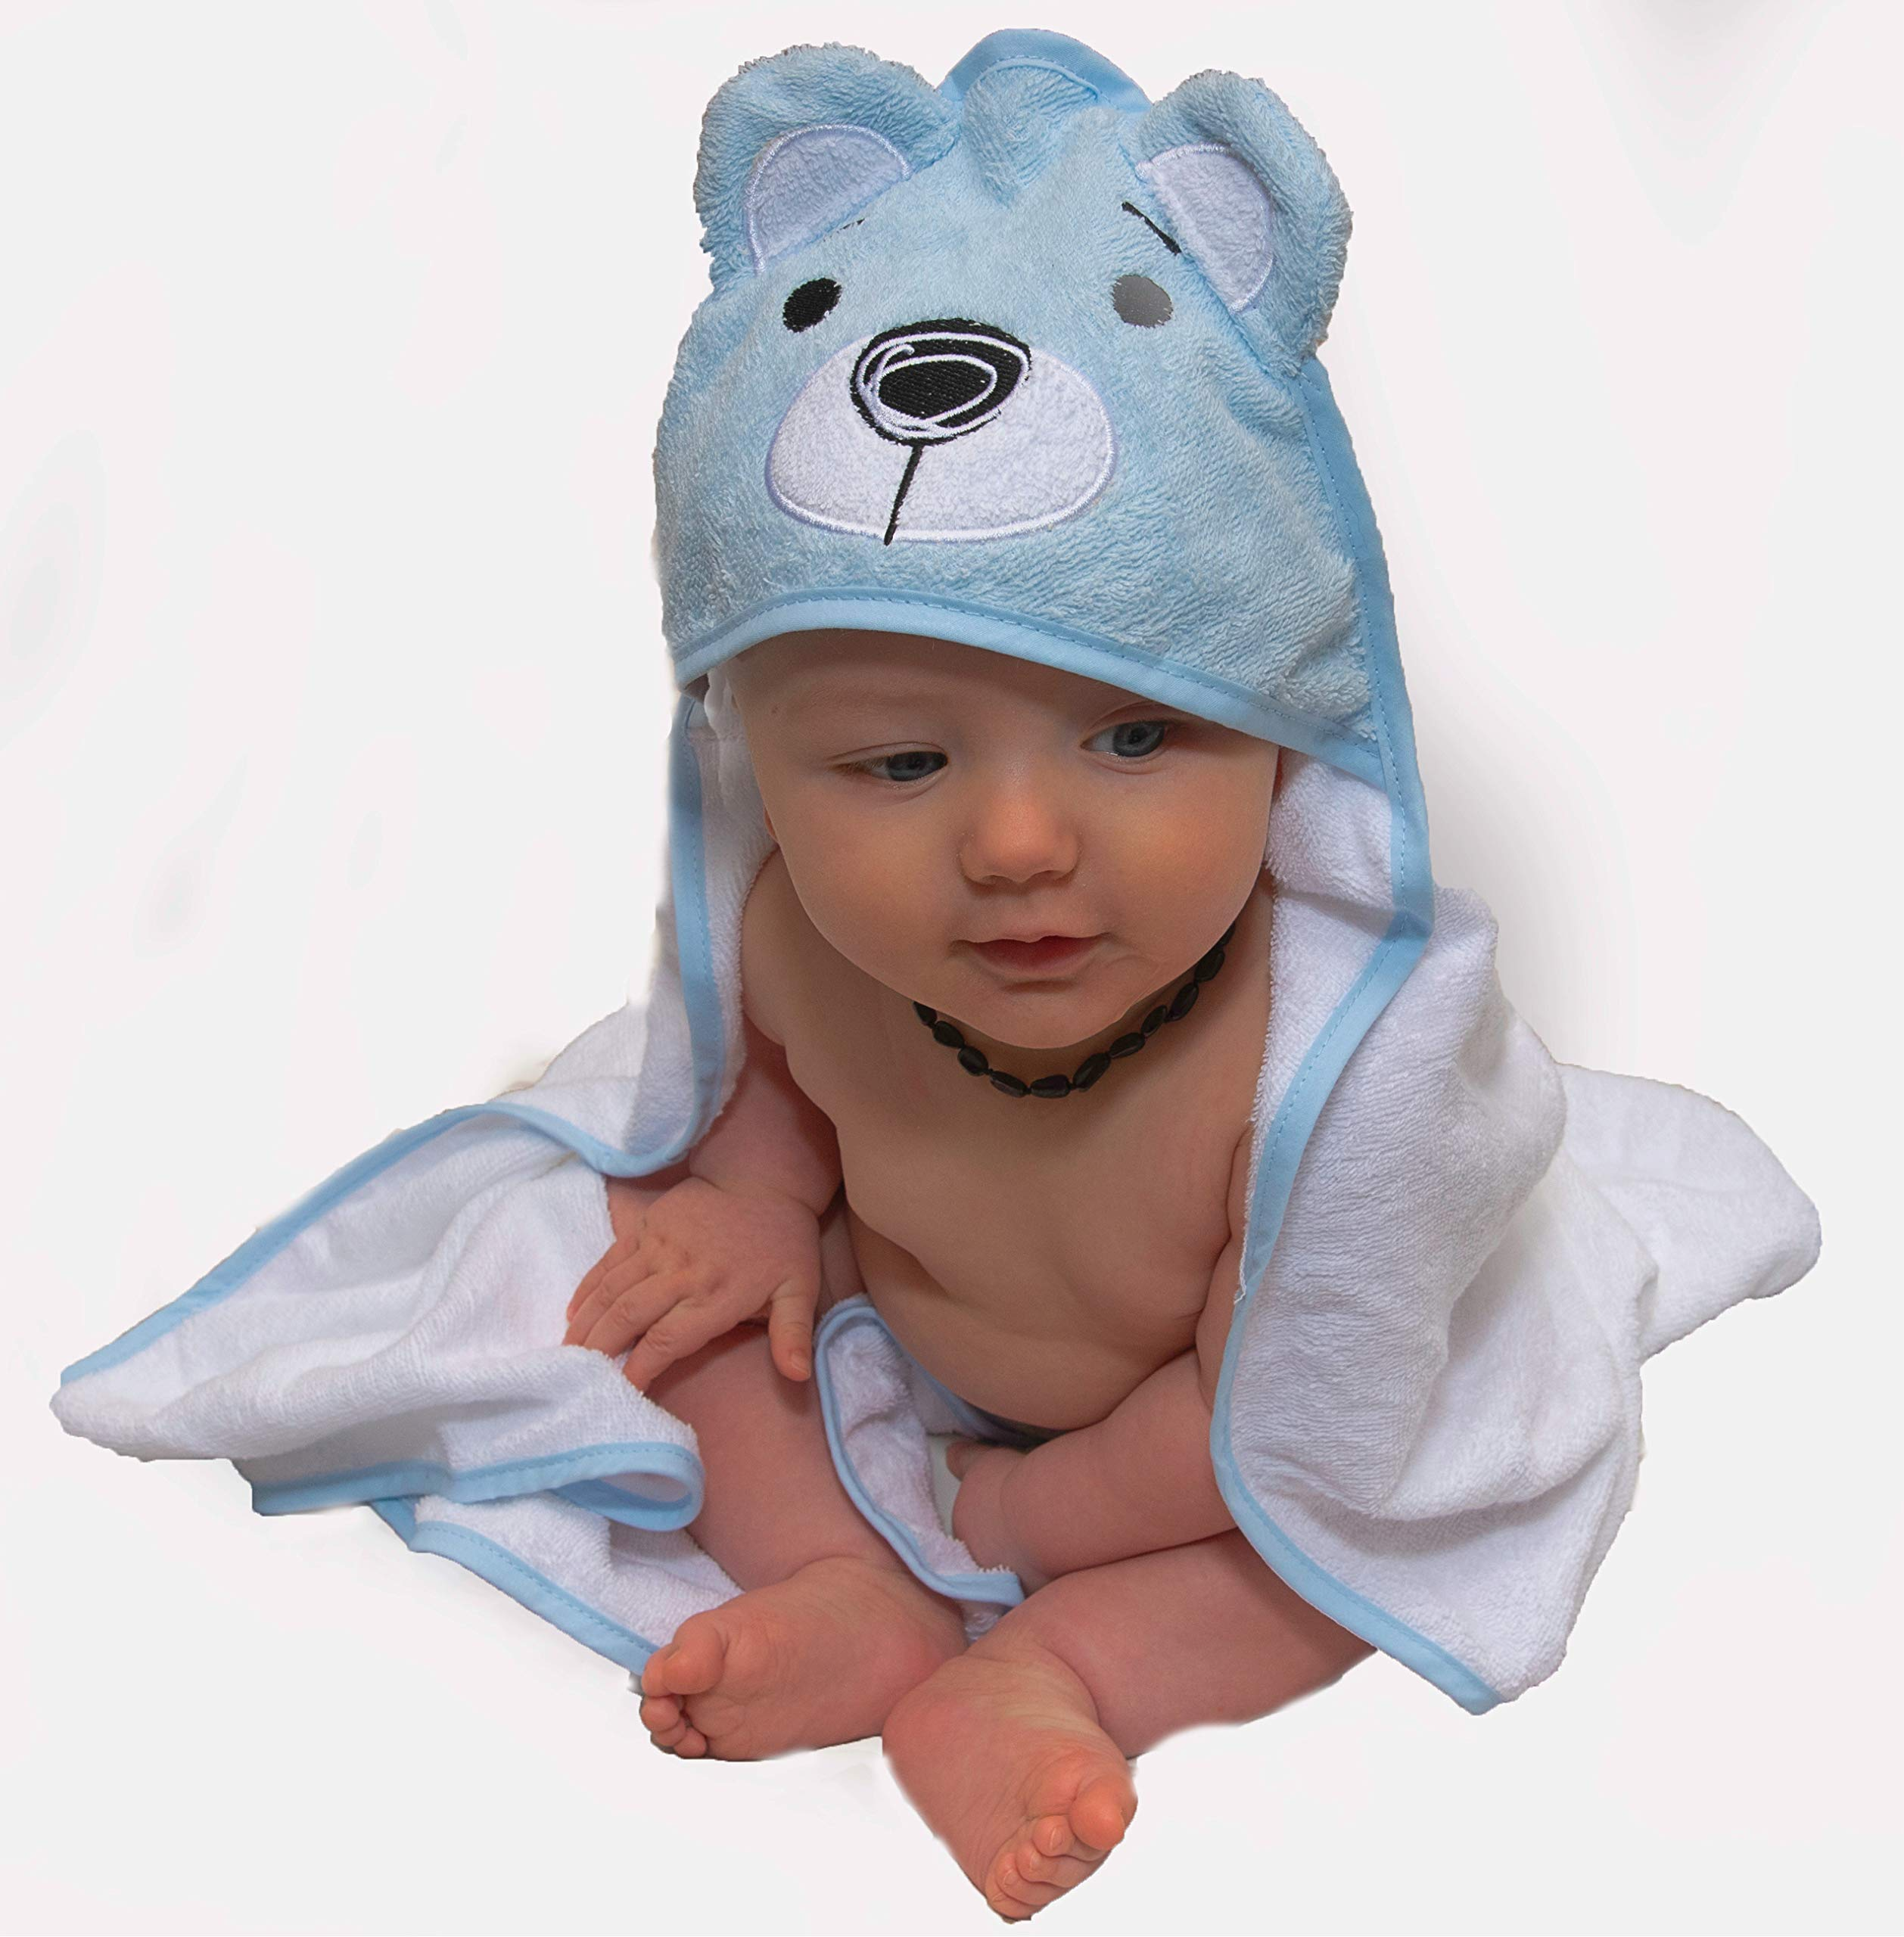 Blue Bear Hooded Baby Towel with 100/% Soft Cotton for Boys and Girls Baby Towel Cute 3D Animal Baby Bath Towel Extra Soft Hooded Towels for Baby Perfect Baby Gifts and Baby Towels